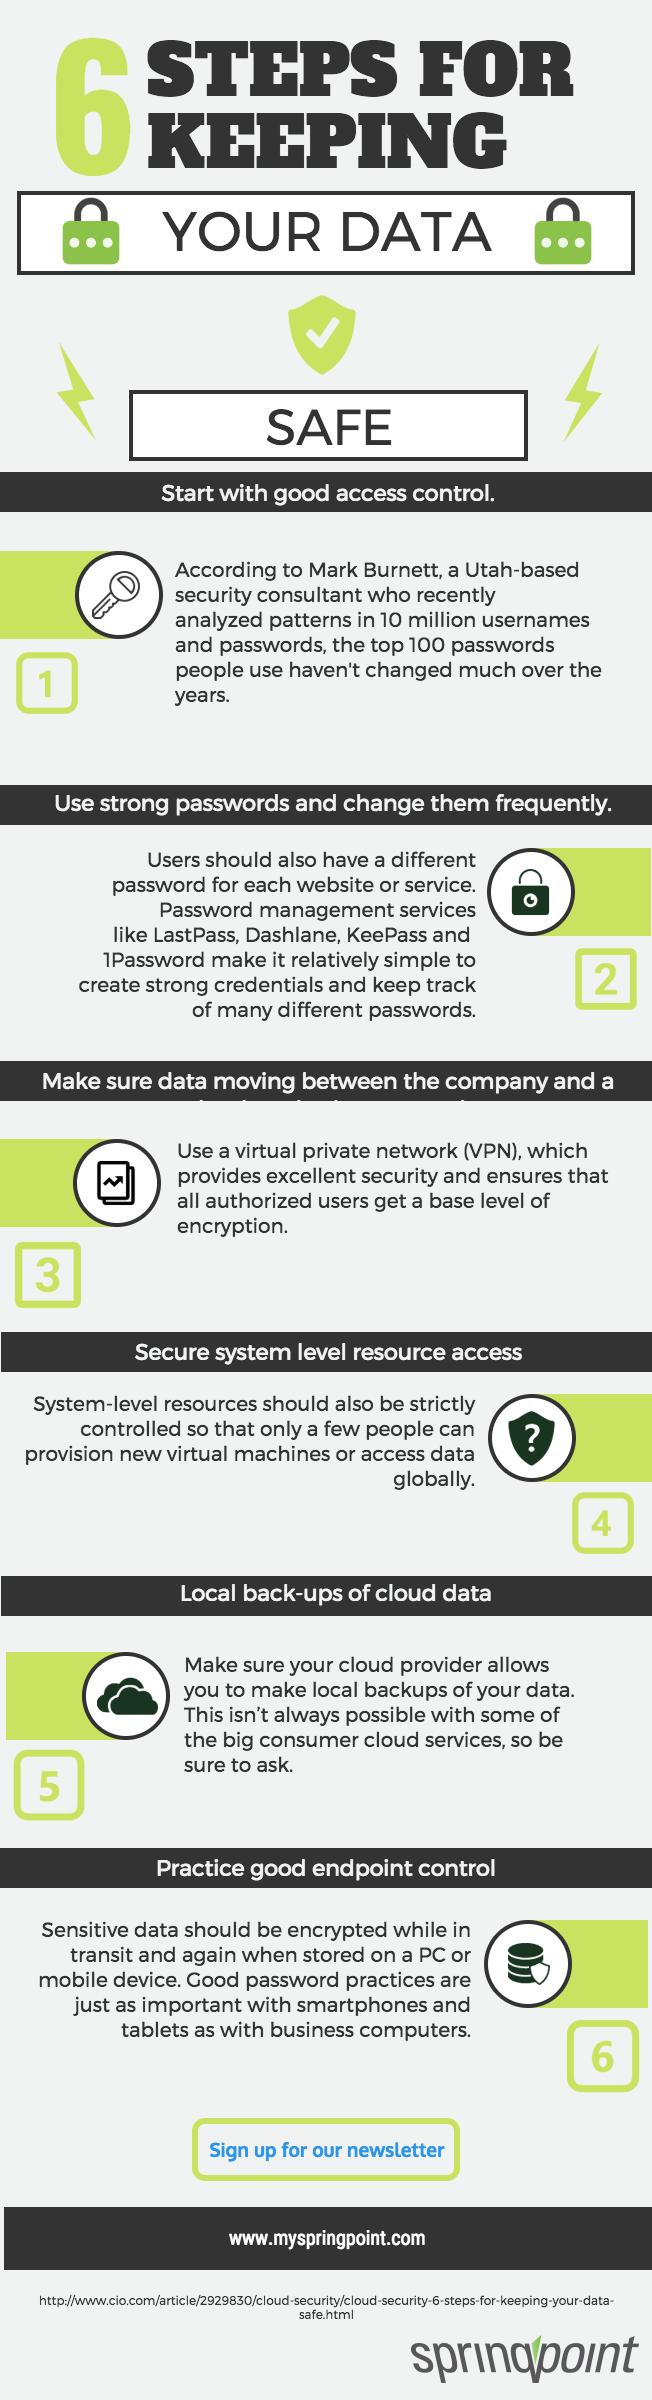 infographic-6 Steps For Keeping Your Data Safe.png